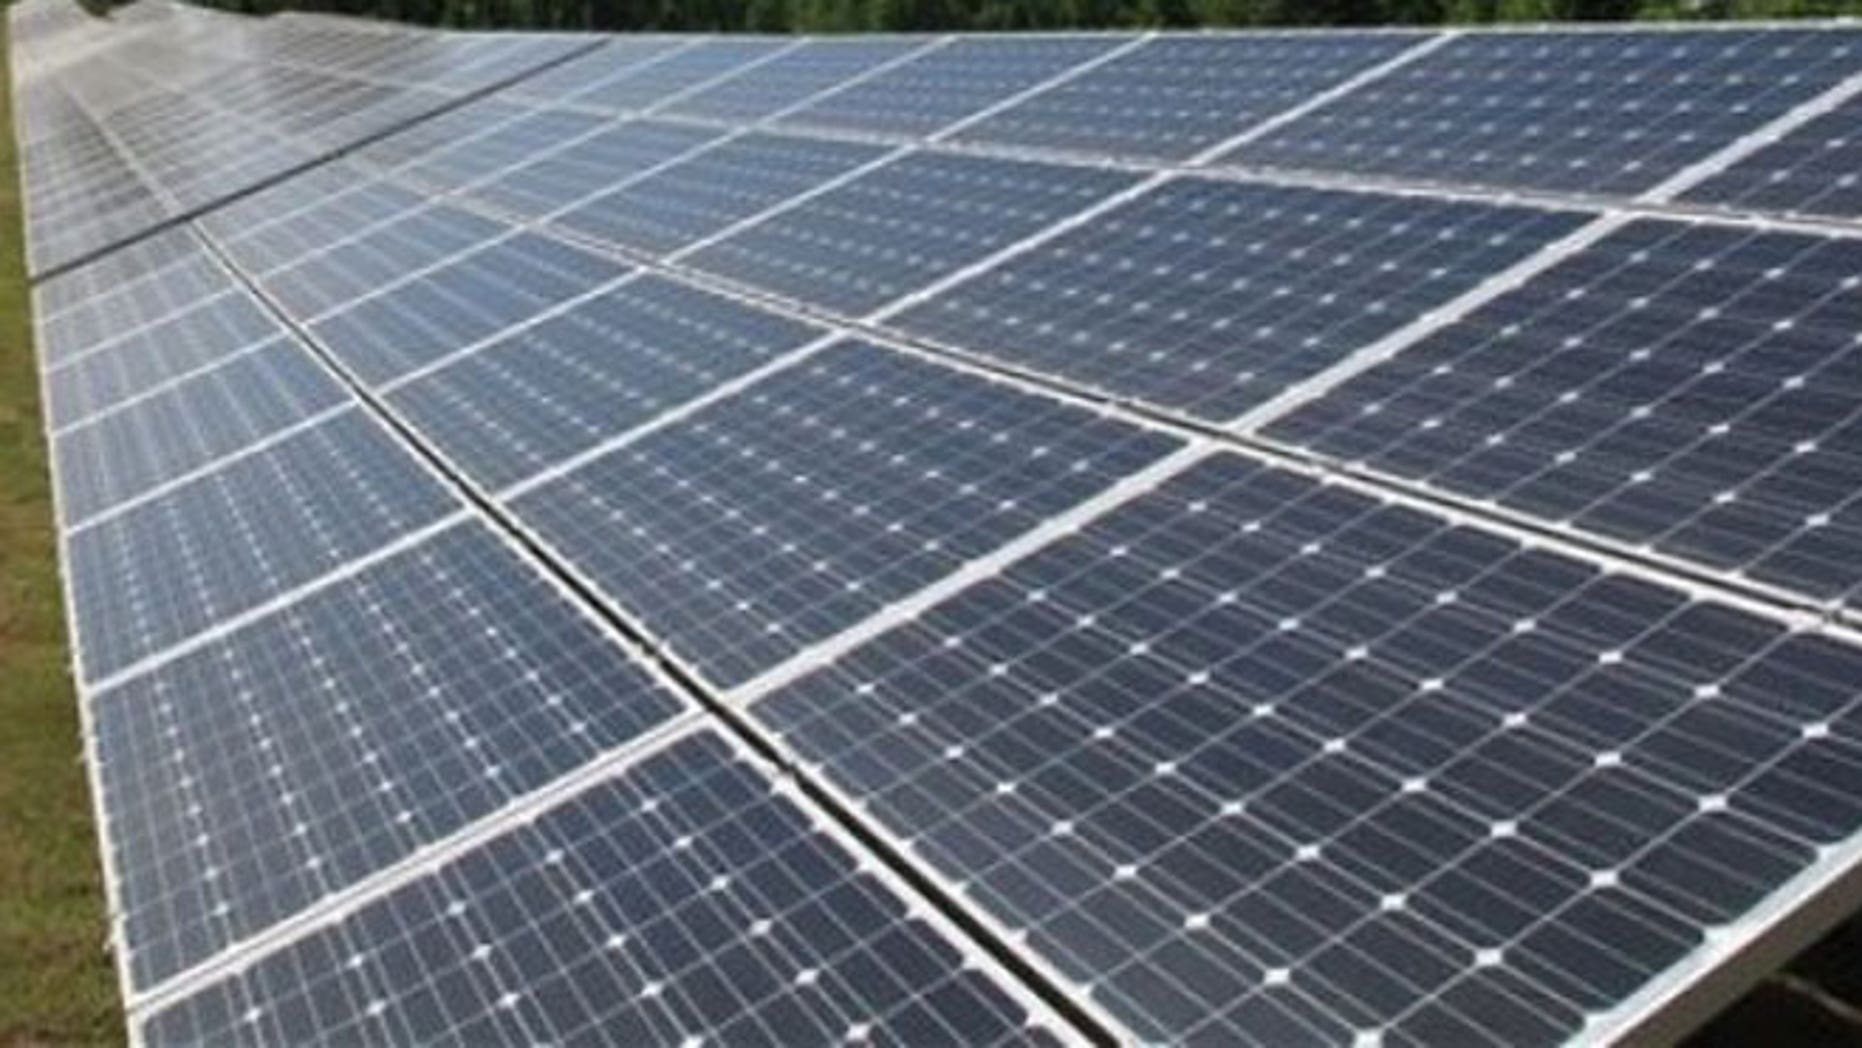 This April 12, 2012, file photo shows panels containing solar cells at a Solar Farm in Tennessee.